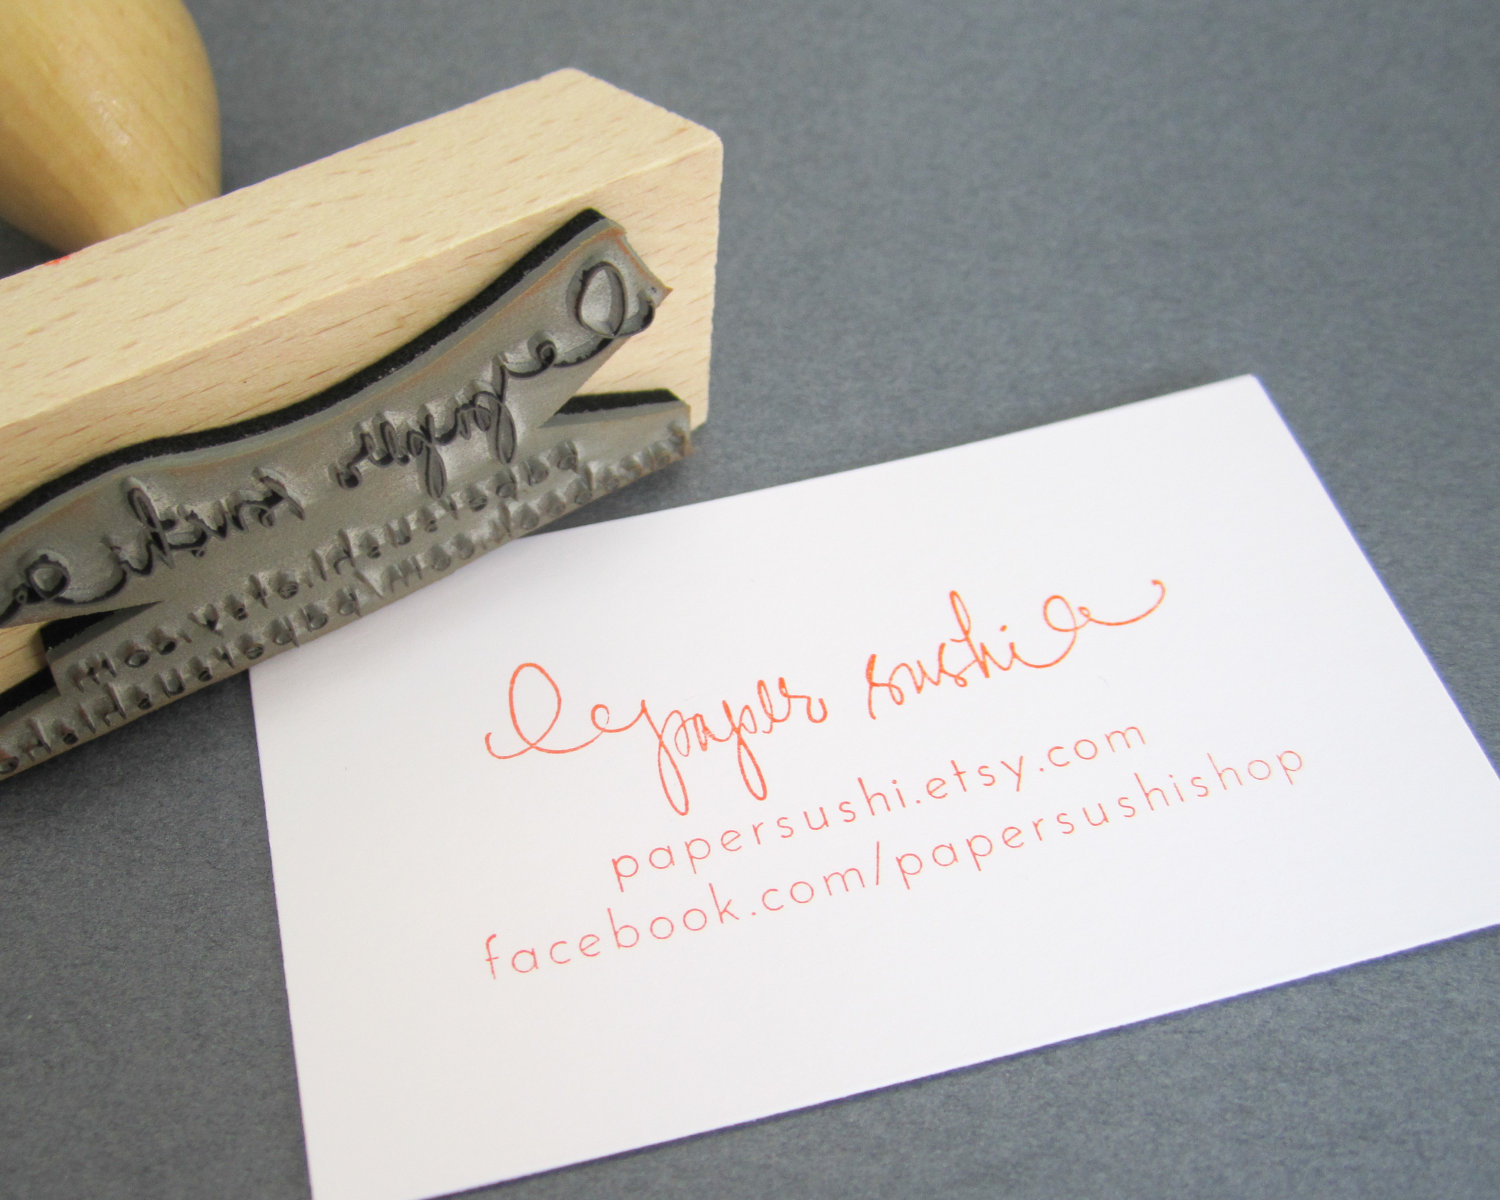 Business Card Stamp Custom 2 3/4 Business Card or by papersushi ...